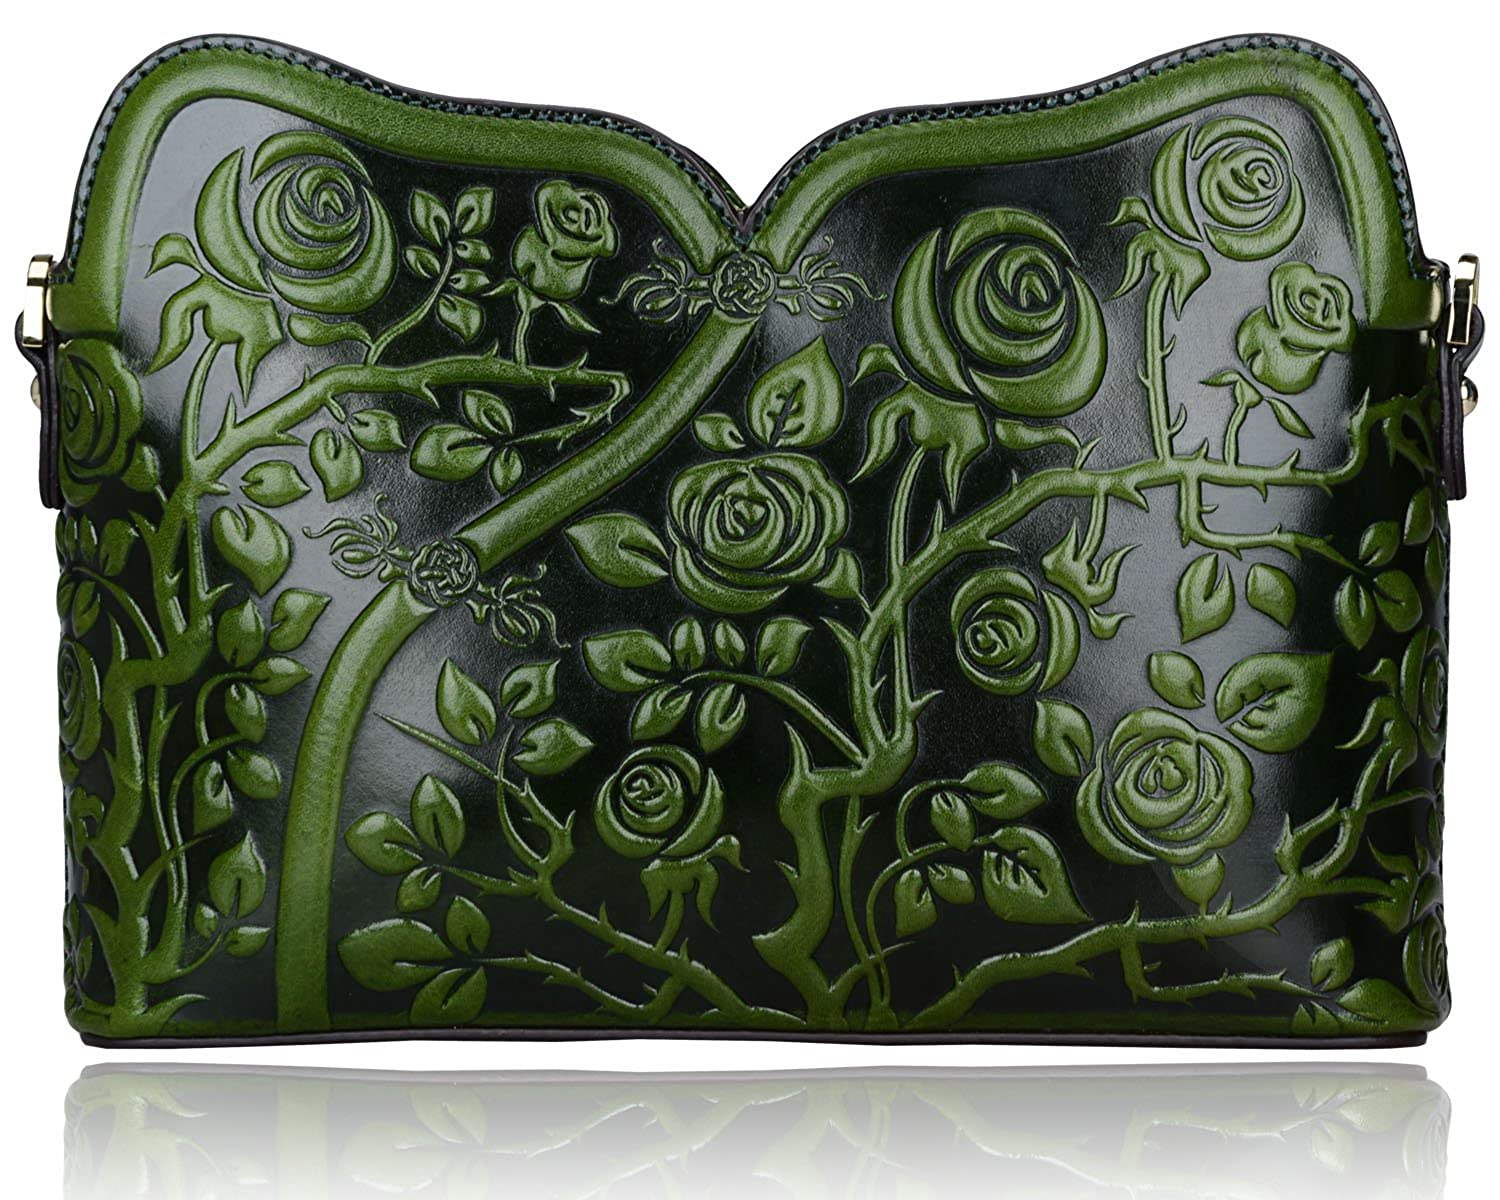 Pijushi Designer Floral Collection Leather Rose Clutch Handbags 22356